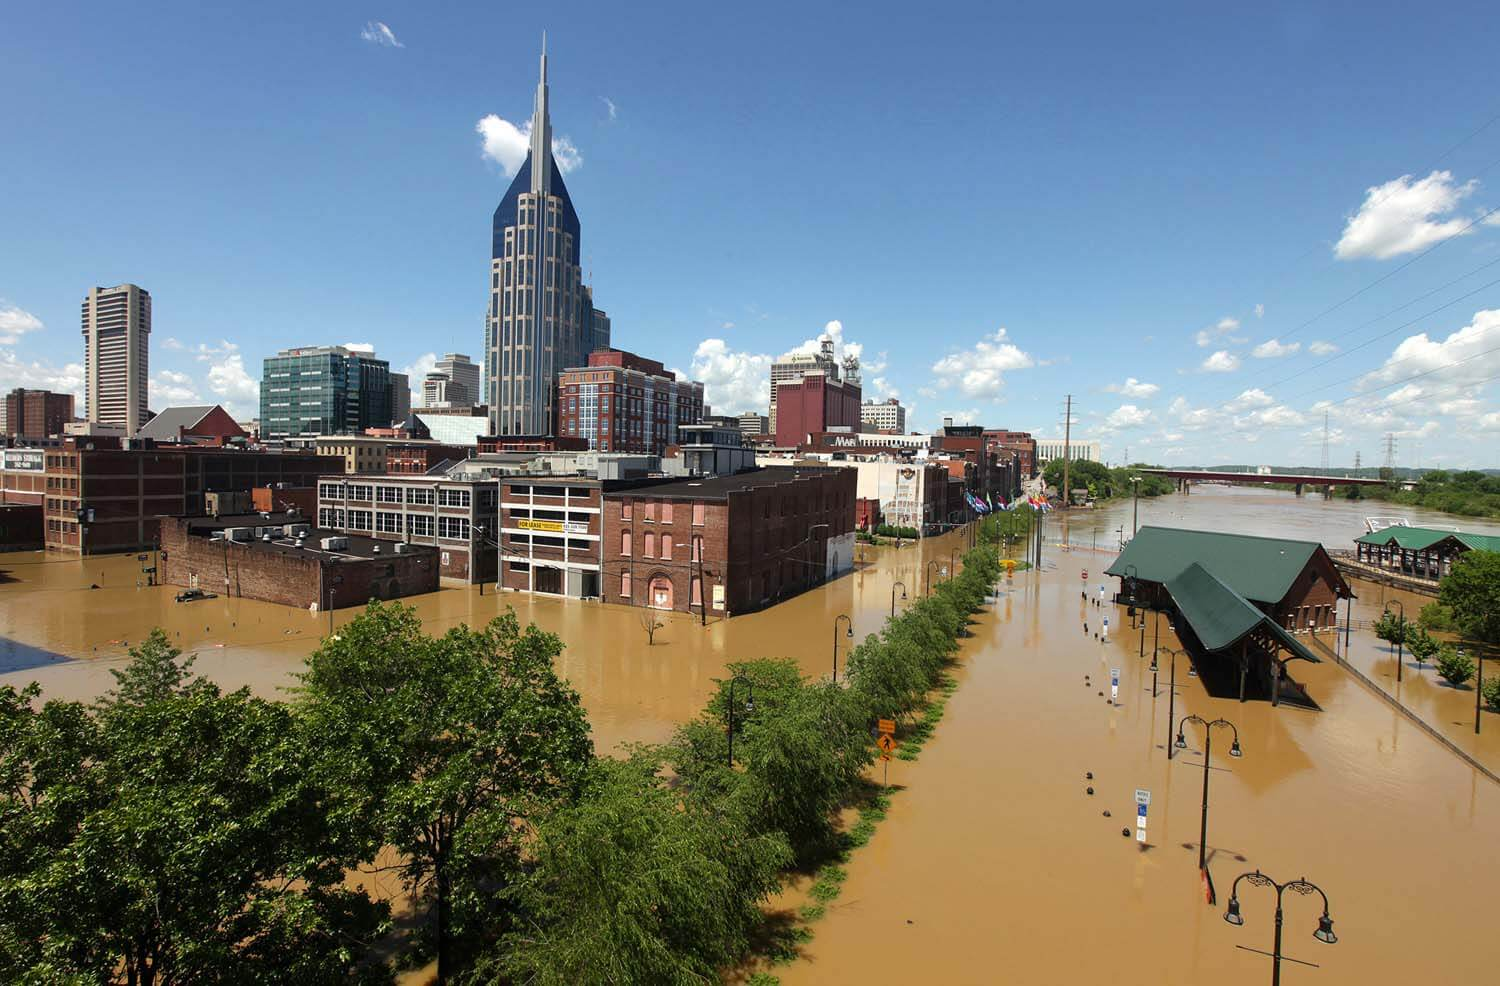 Community Foundation of Middle Tennessee helped out after the Nashville flood, pictured here.